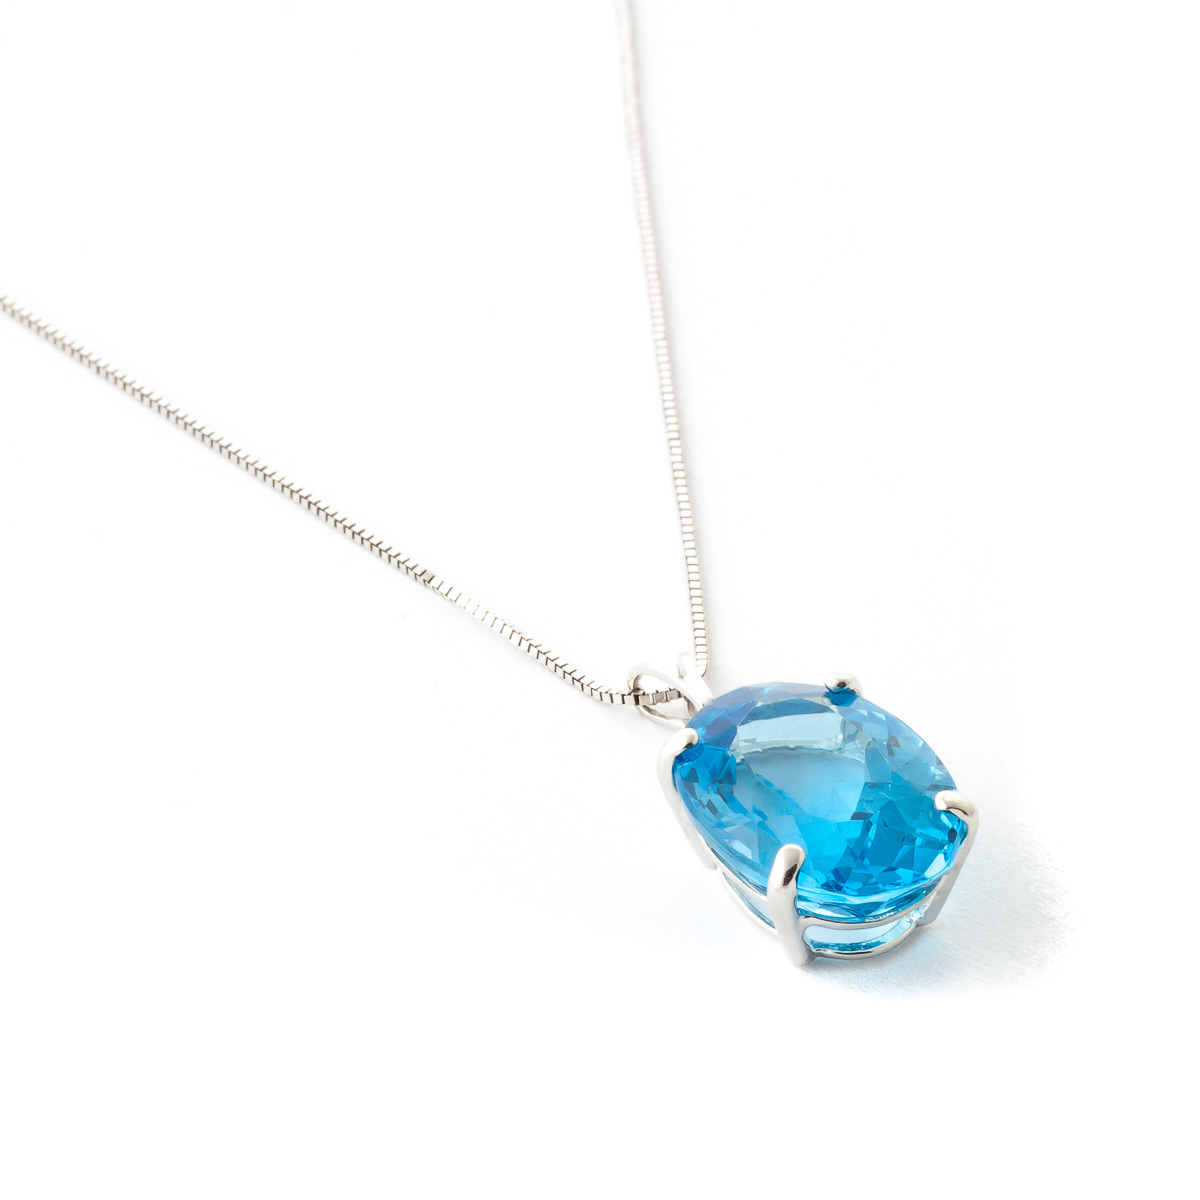 Blue Topaz Oval Pendant Necklace 8 ct in 9ct White Gold